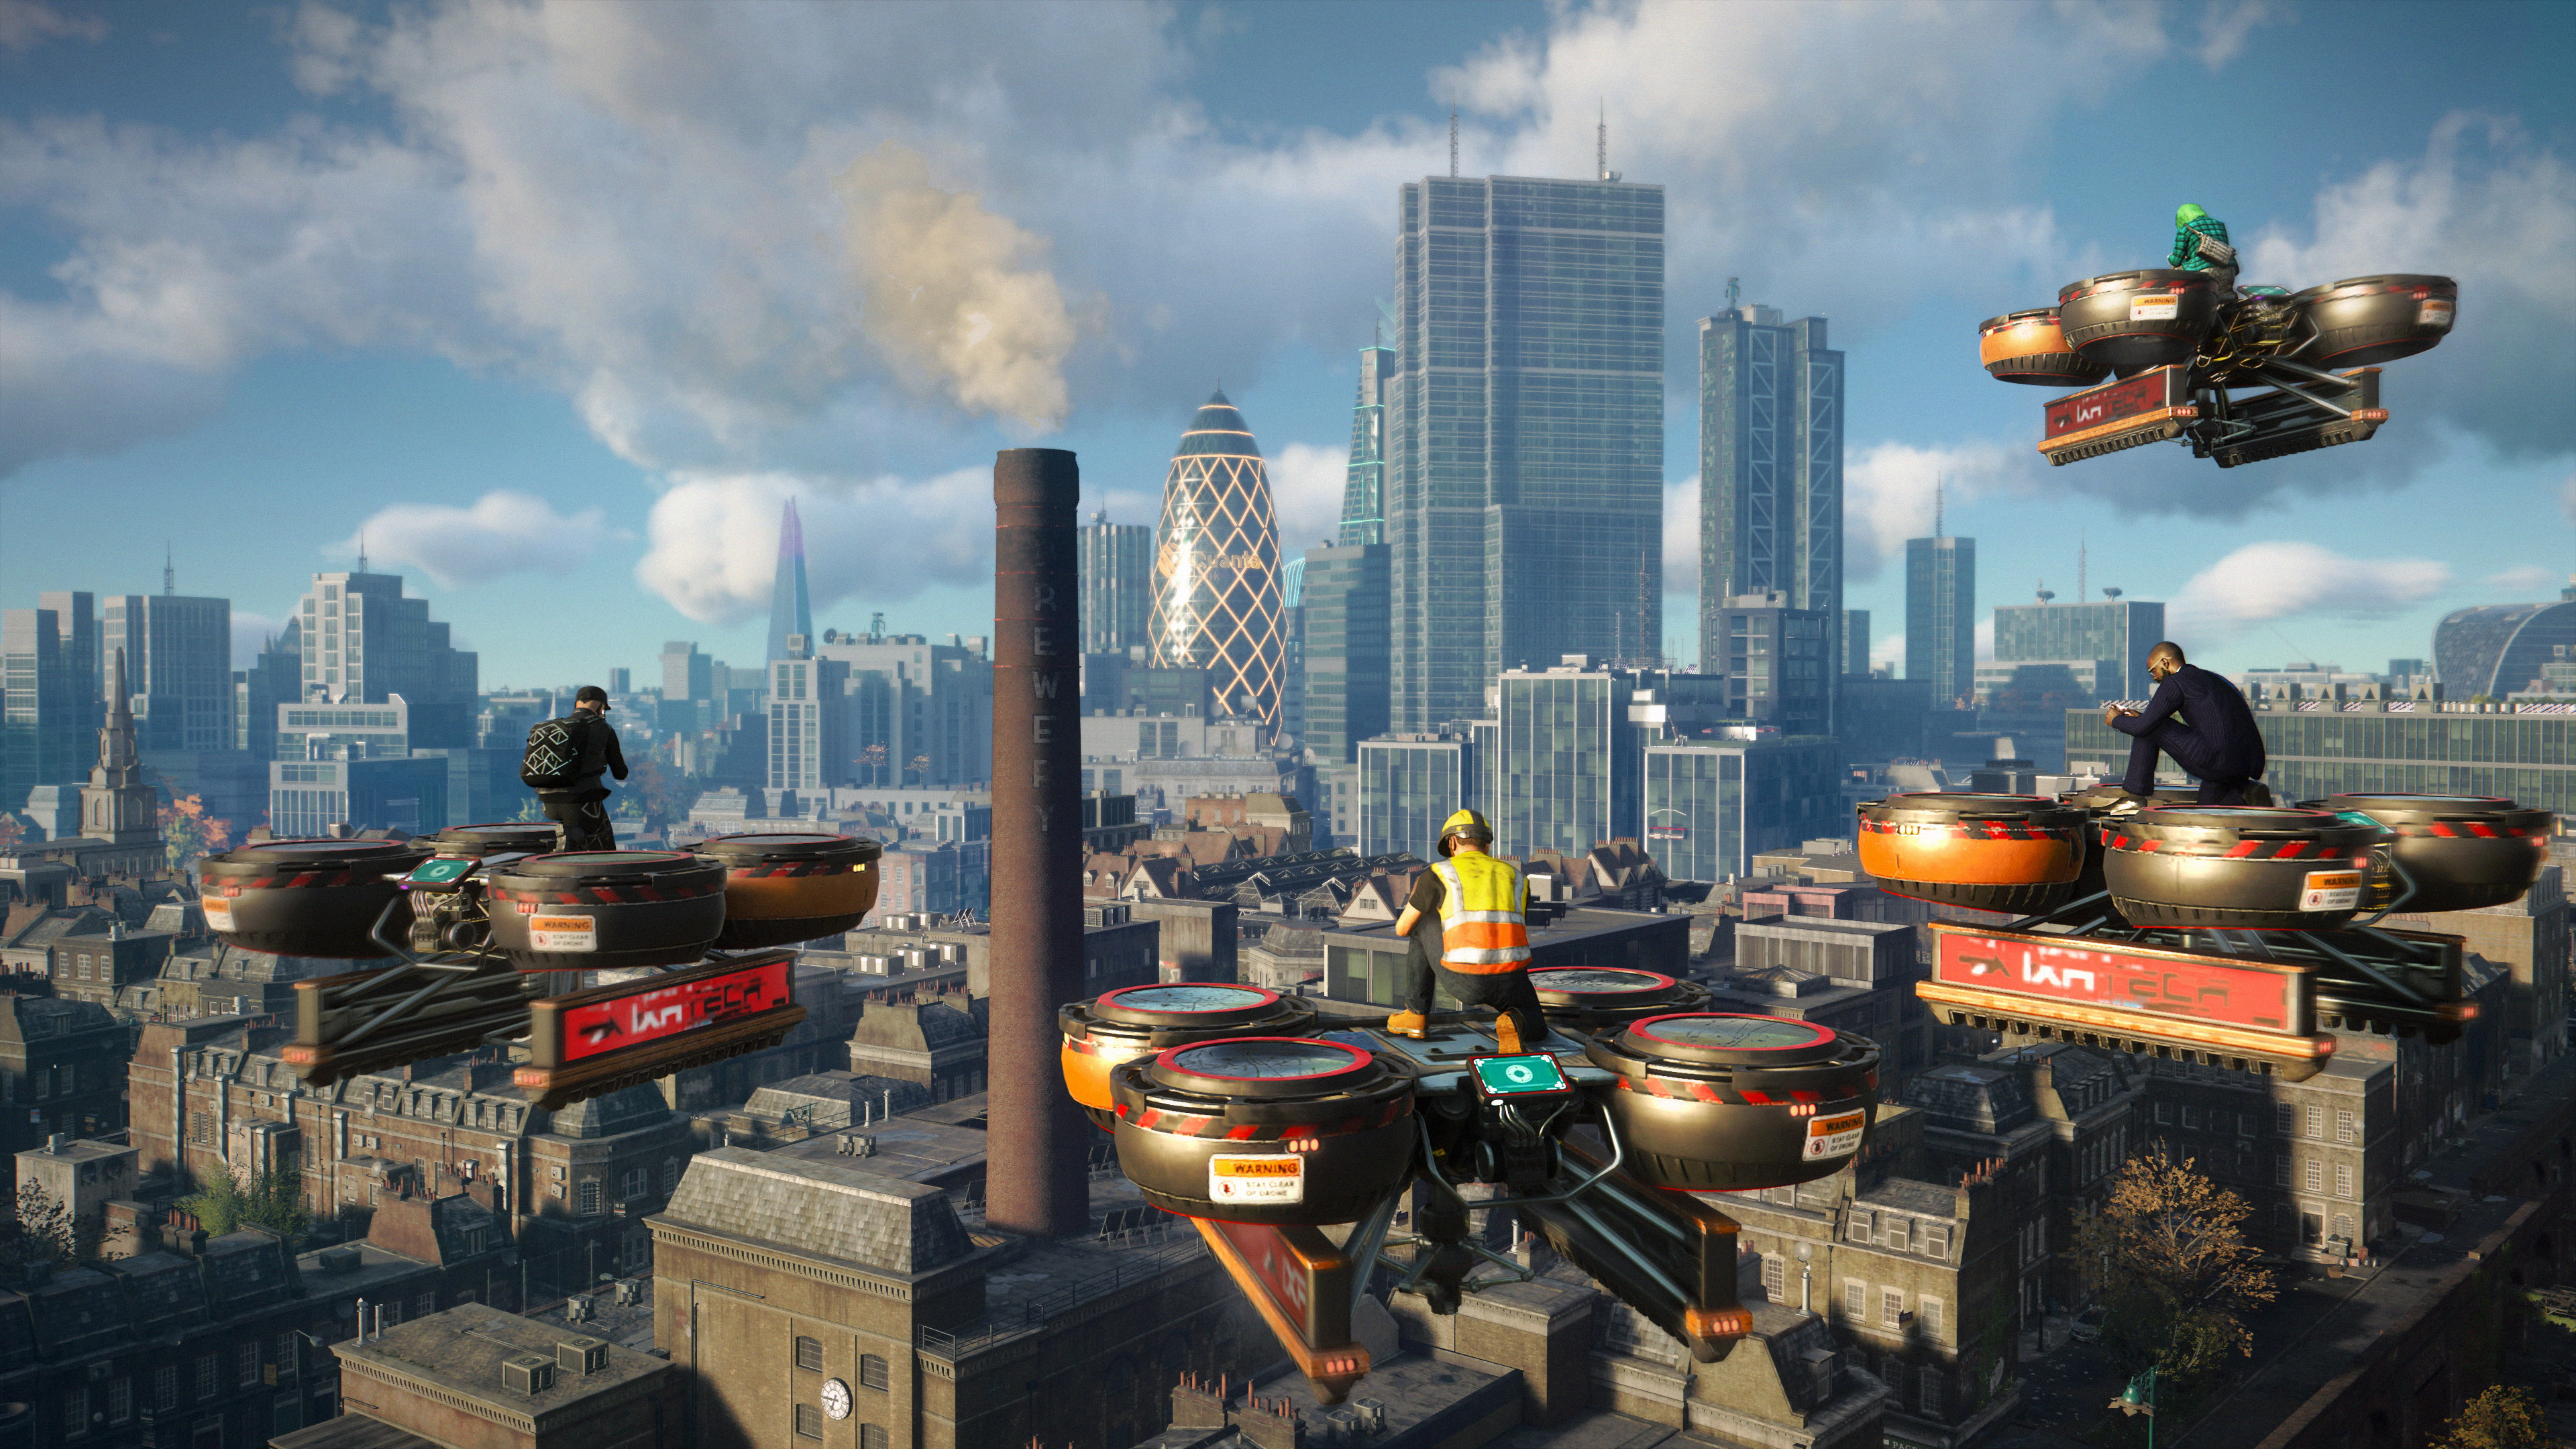 players ride construction drones over London's skyline in Watch Dogs Legion Online